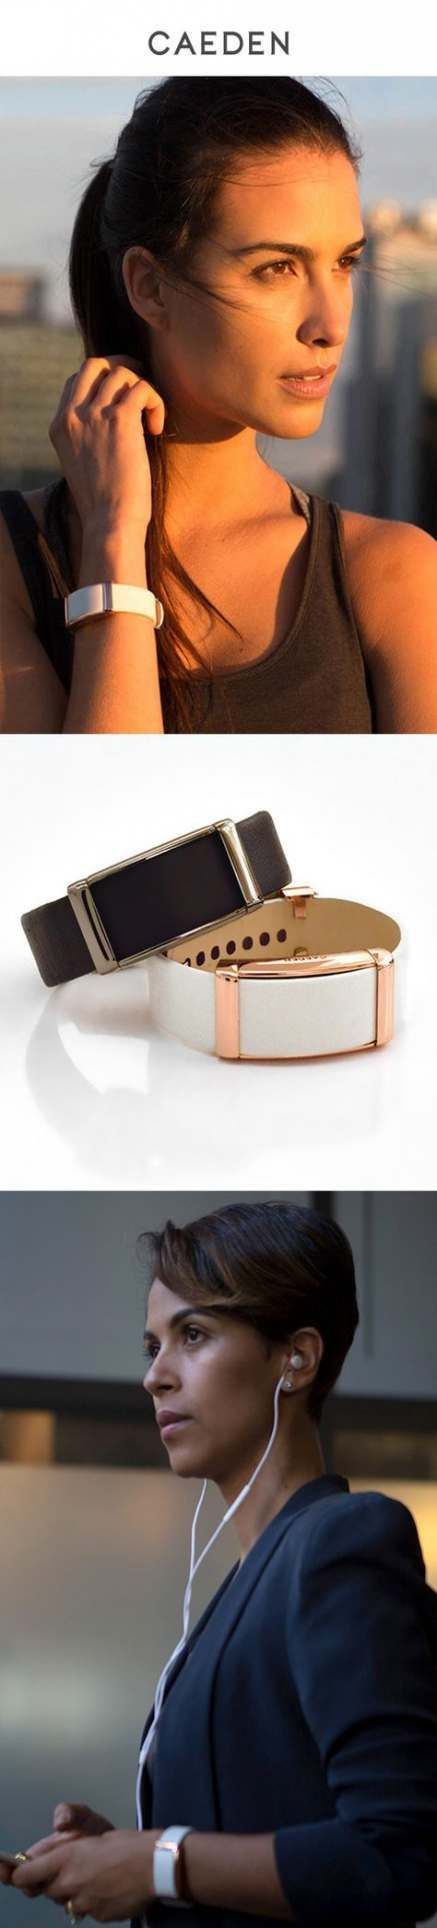 54+ ideas fitness tracker for women products #fitness